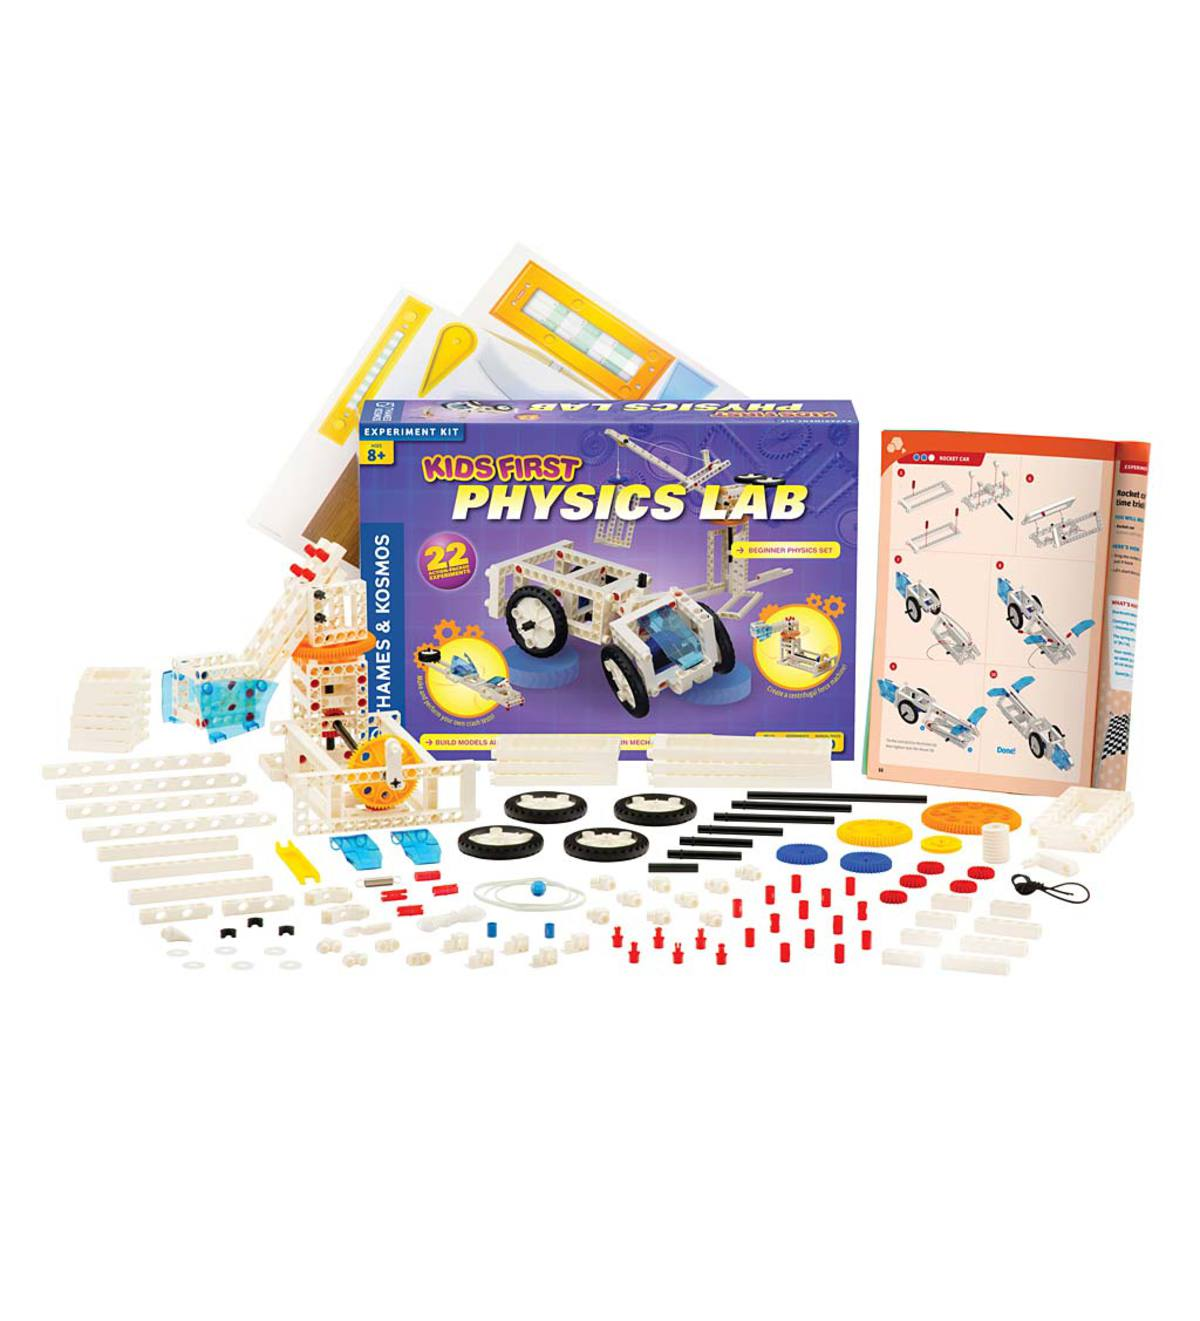 Kids' First Physics Lab   10 years old   Ages   HearthSong